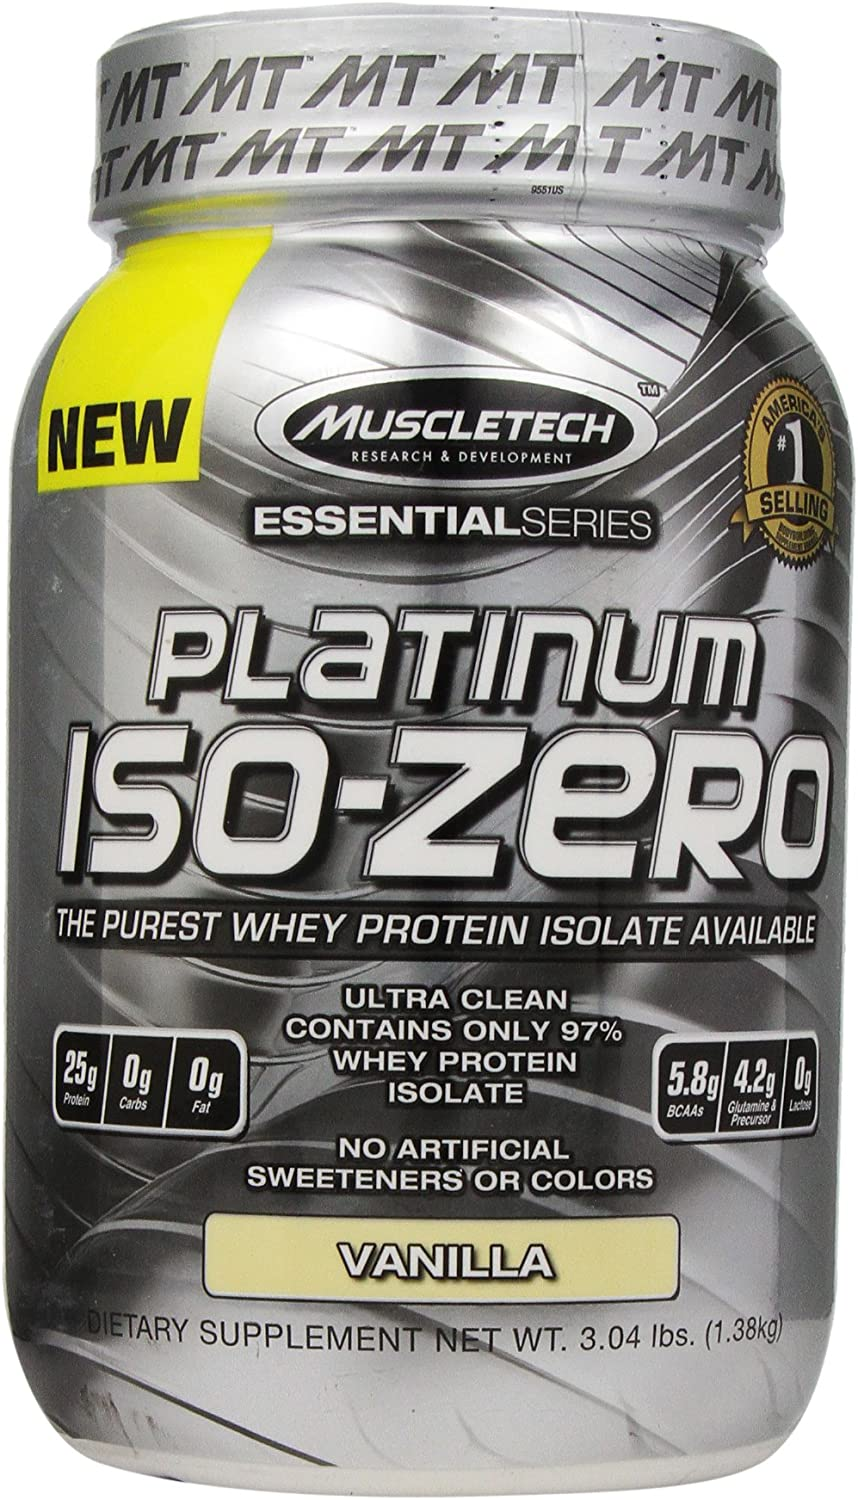 MuscleTech Platinum ISO Zero, The Purest Whey Protein Isolate Available, Vanilla, 3.04 lbs